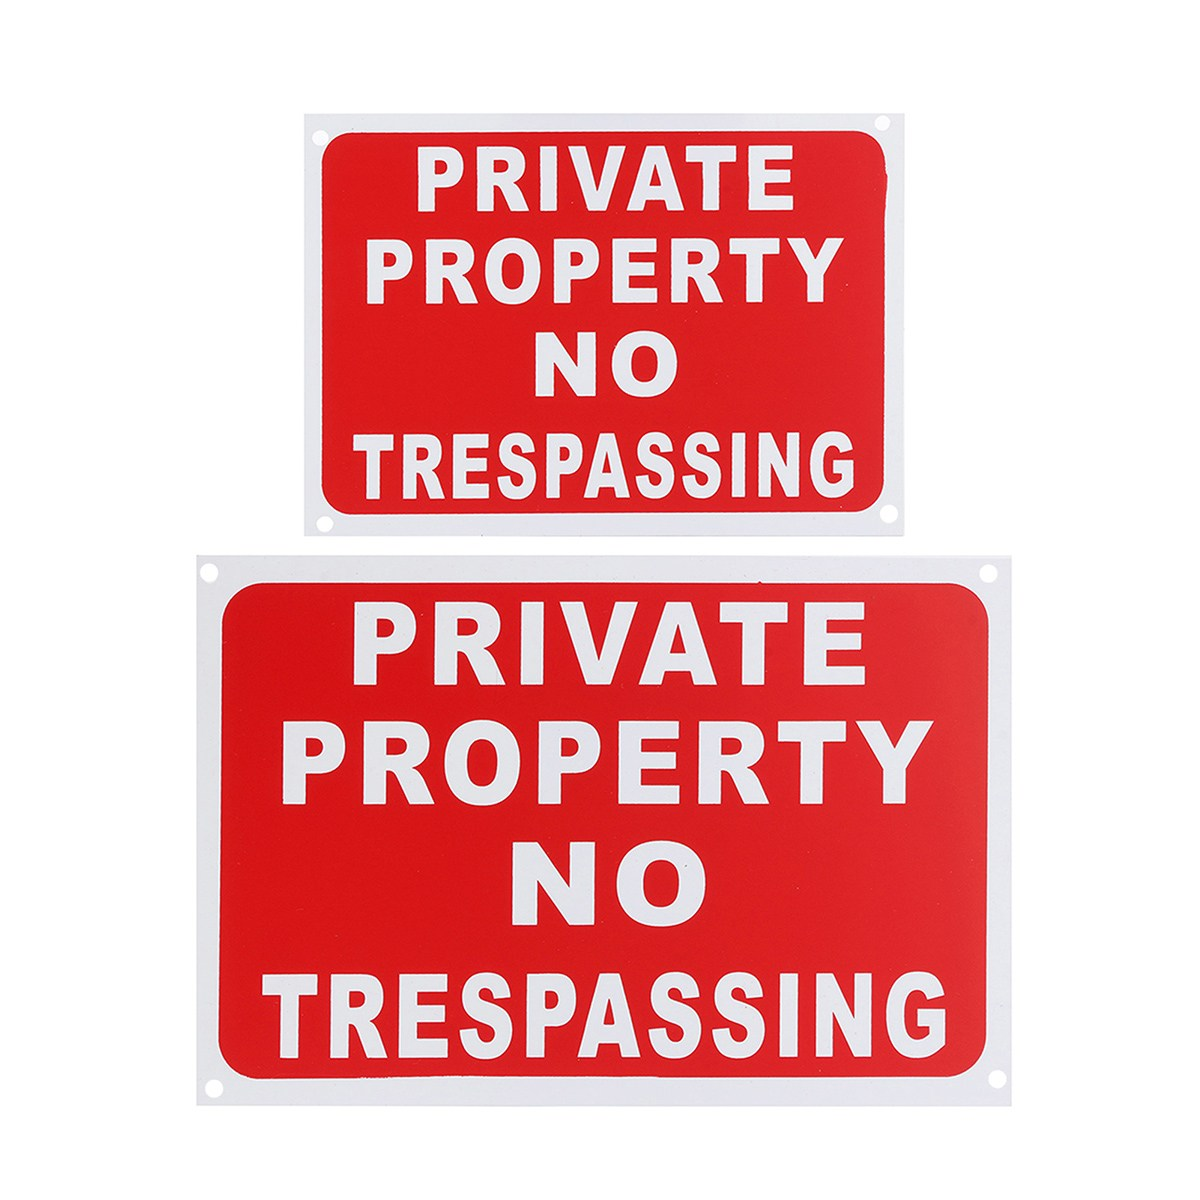 Safurance Private Property No Trespassing Plastic Stickers Security Signs Decal 2 Sizes  Workplace Safety WarningSafurance Private Property No Trespassing Plastic Stickers Security Signs Decal 2 Sizes  Workplace Safety Warning